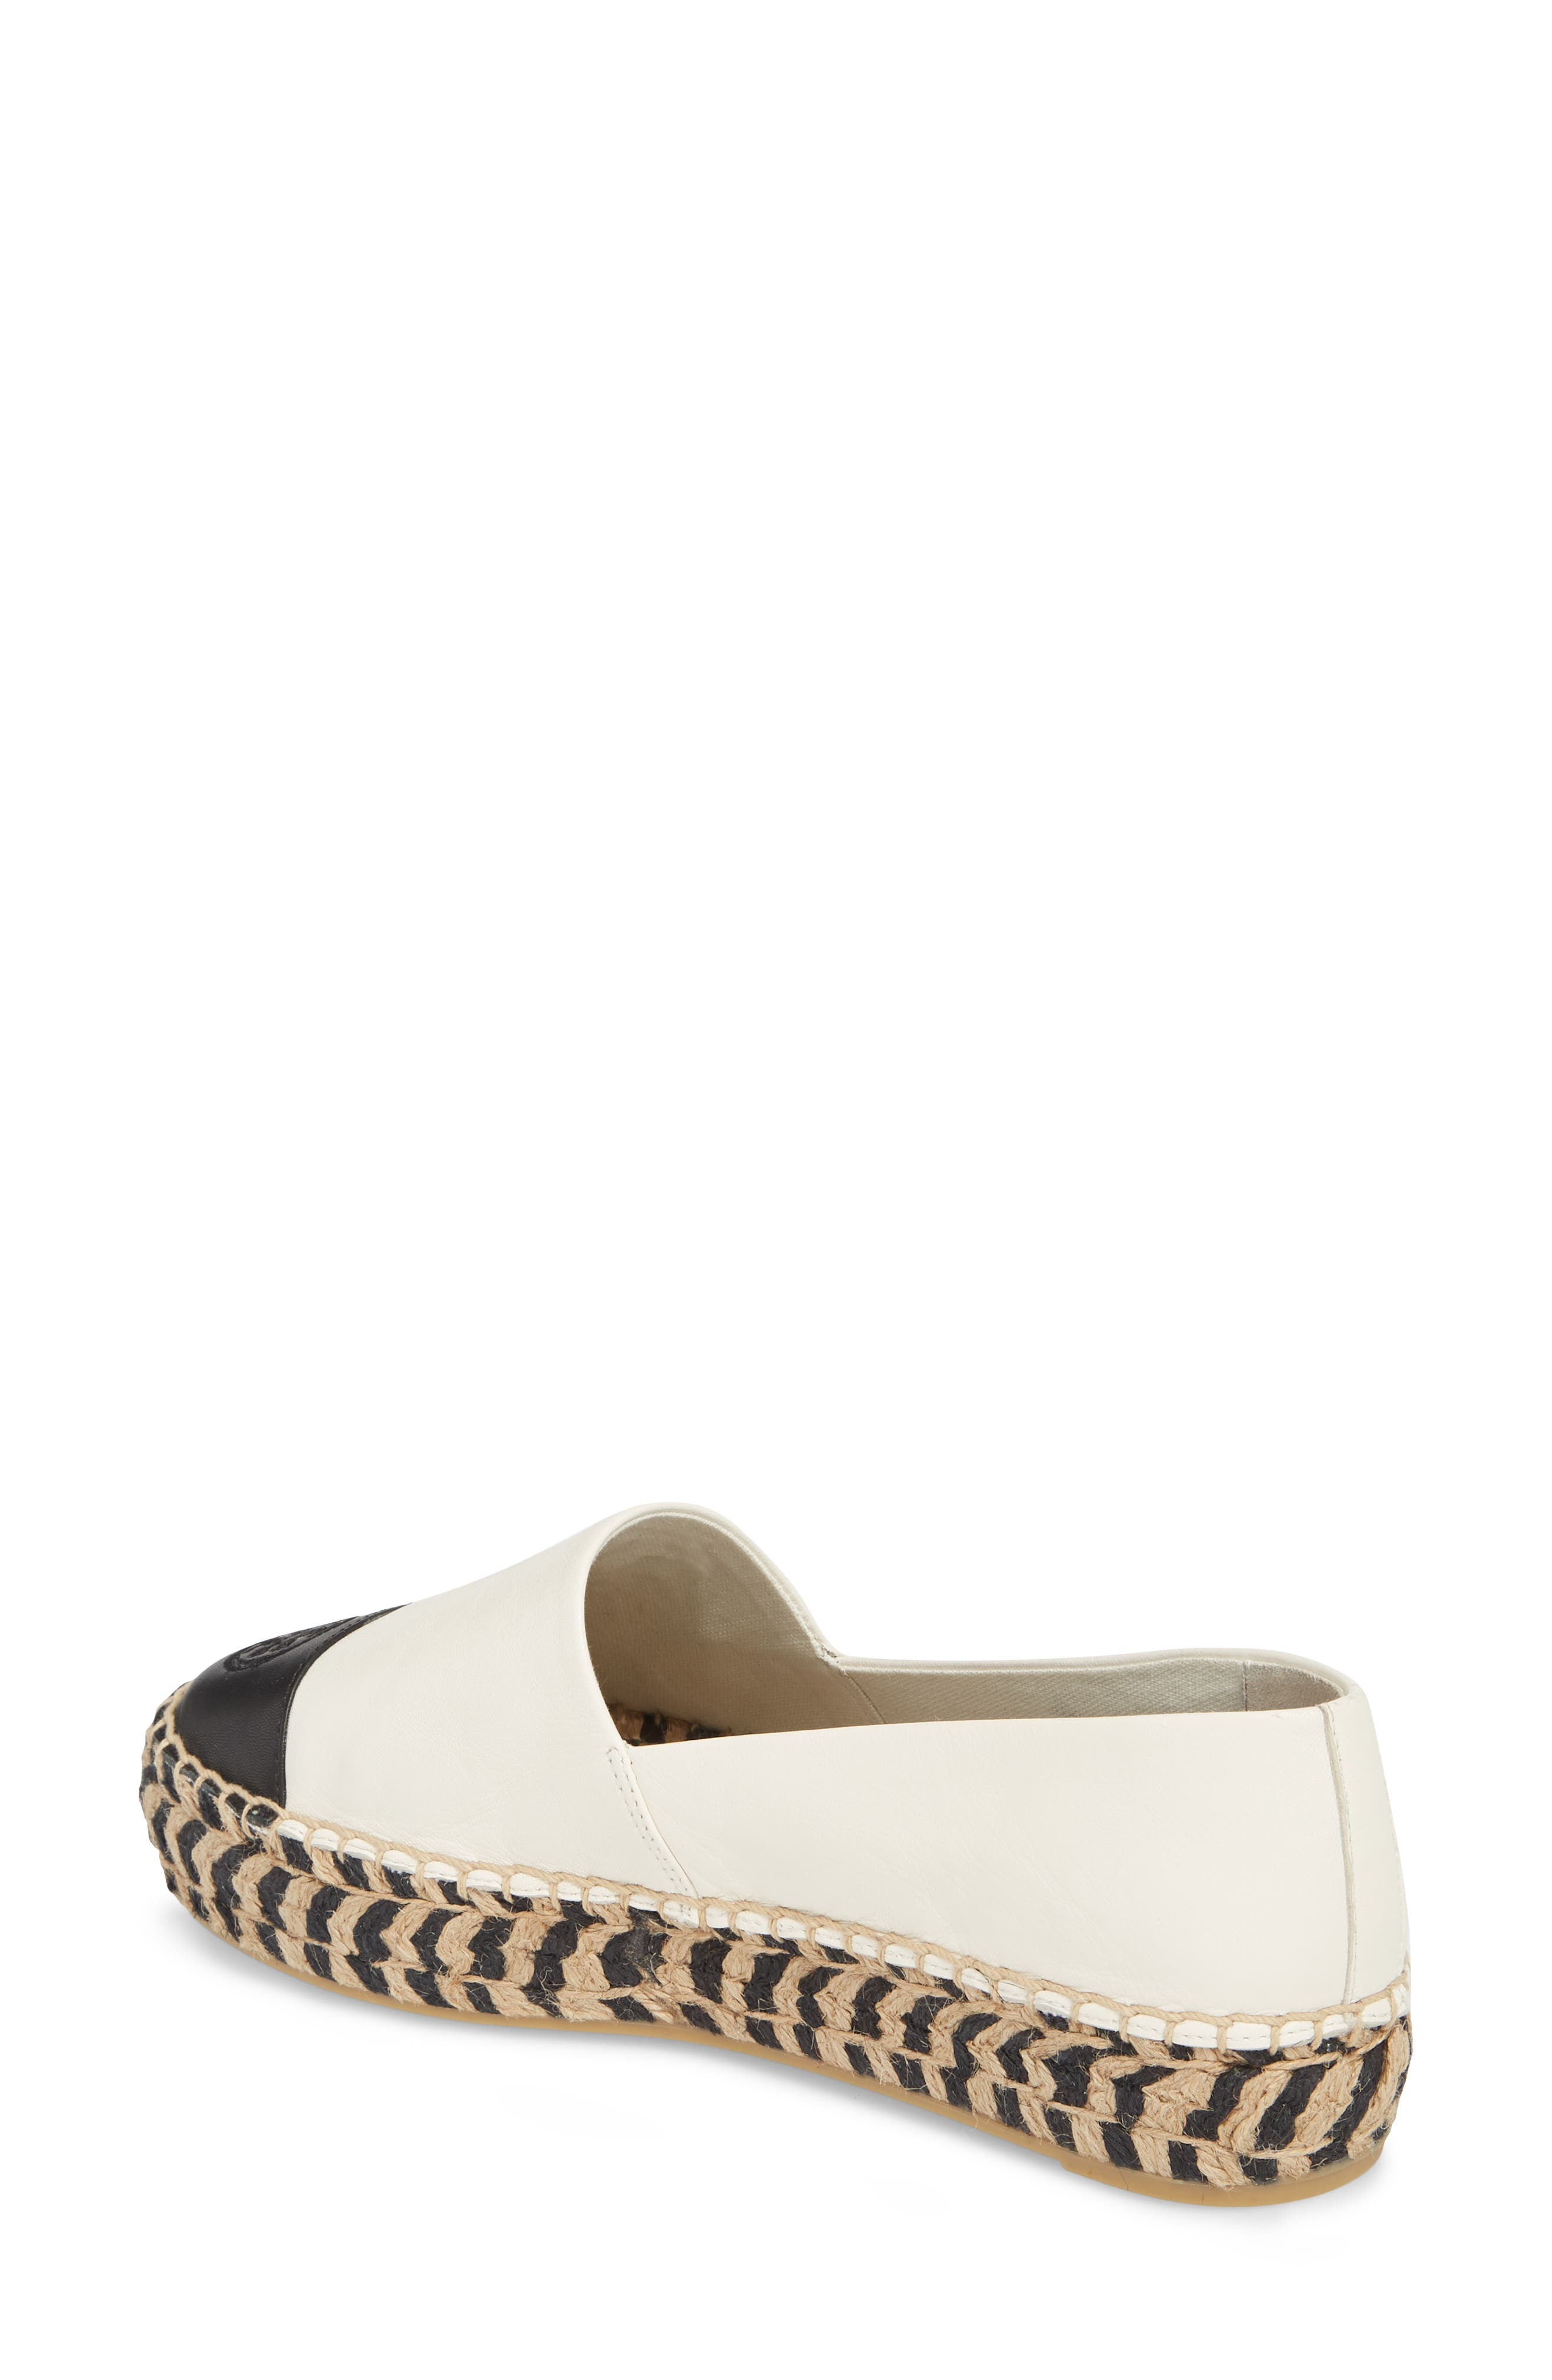 TORY BURCH, Colorblock Platform Espadrille, Alternate thumbnail 2, color, PERFECT IVORY/ PERFECT BLACK